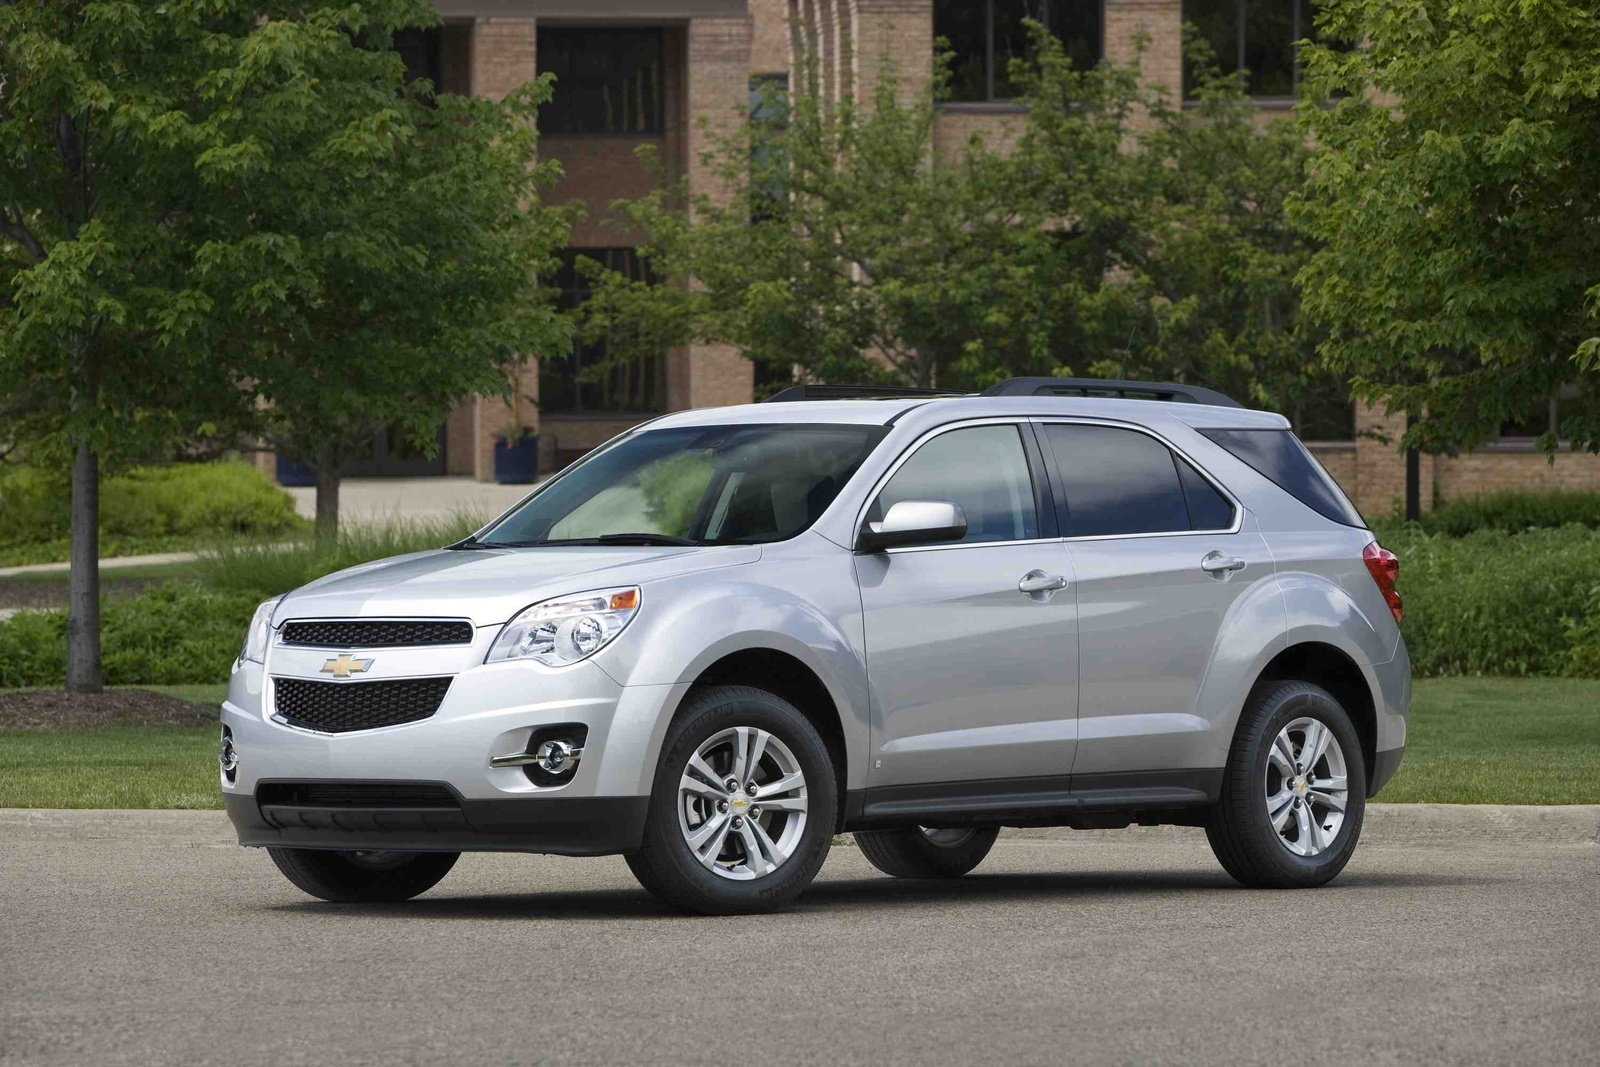 2010 Ford Escape - User Reviews - CarGurus